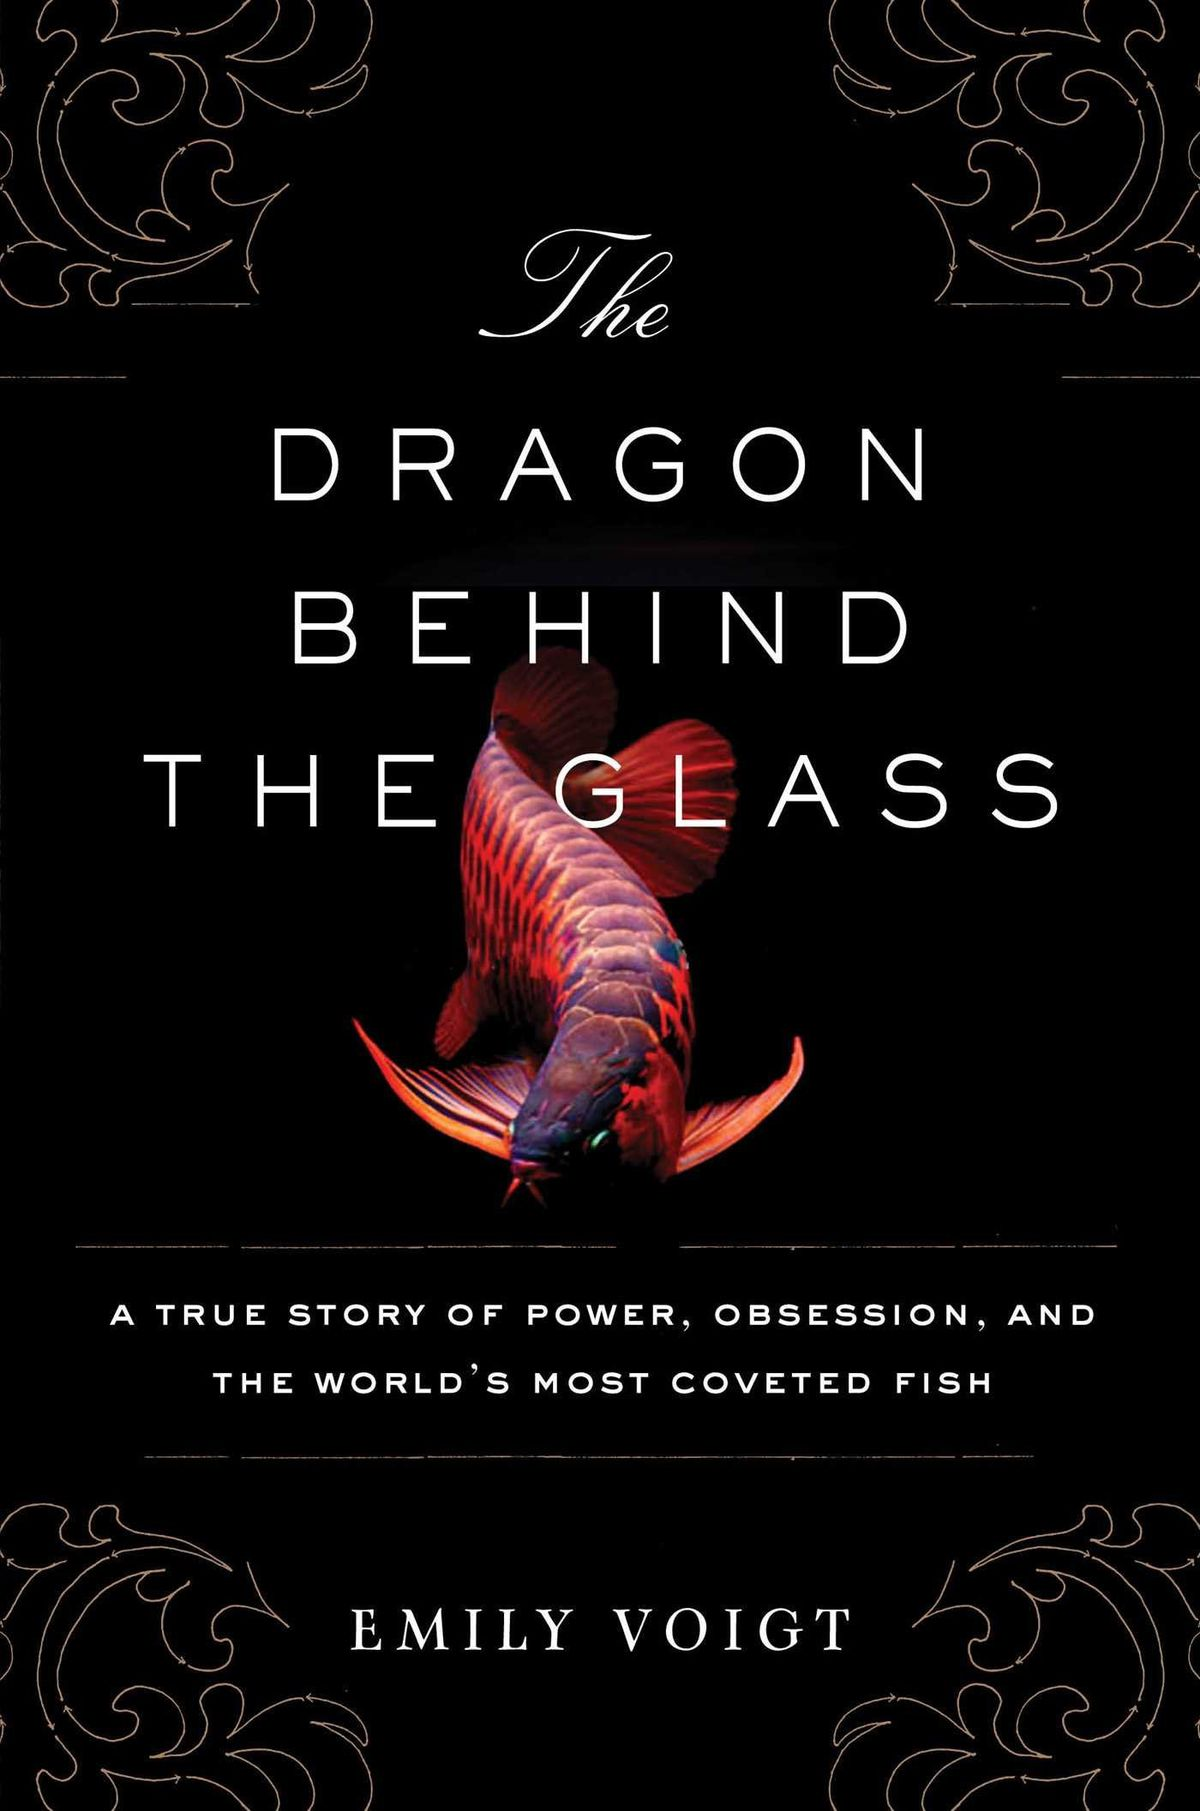 The Dragon Behind the Glass by Emily Voigt